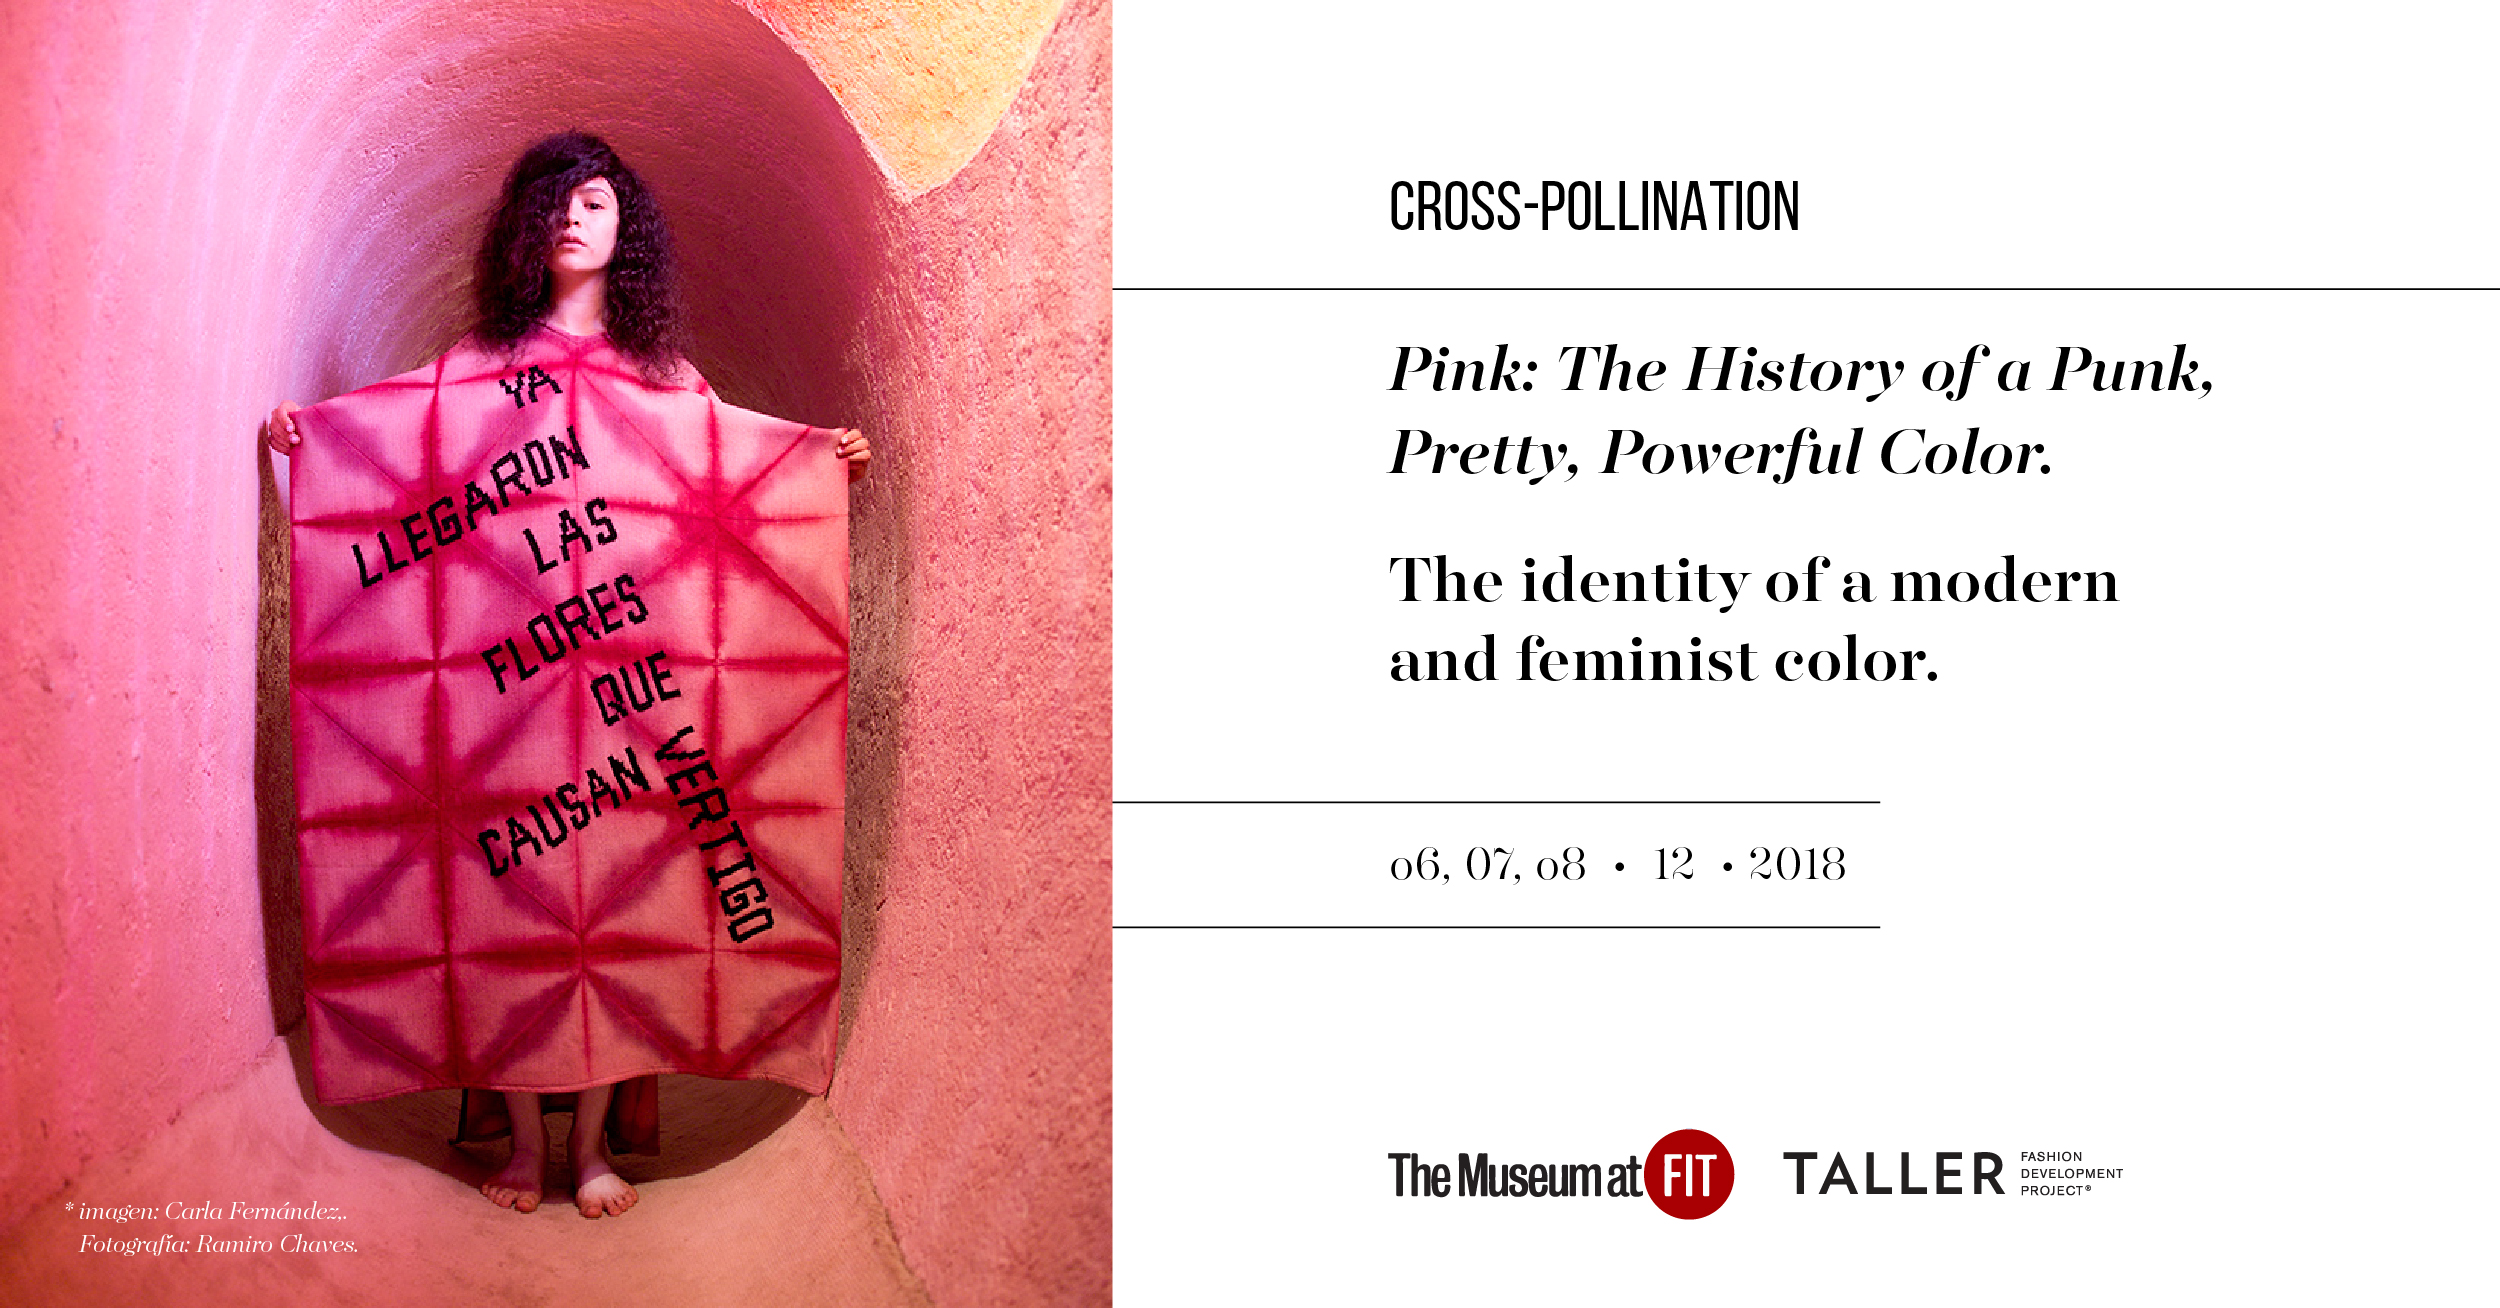 CrossPollination: Pink: The History of a Punk, Pretty, Powerful Color. The identity of a Modern and Feminist Color.